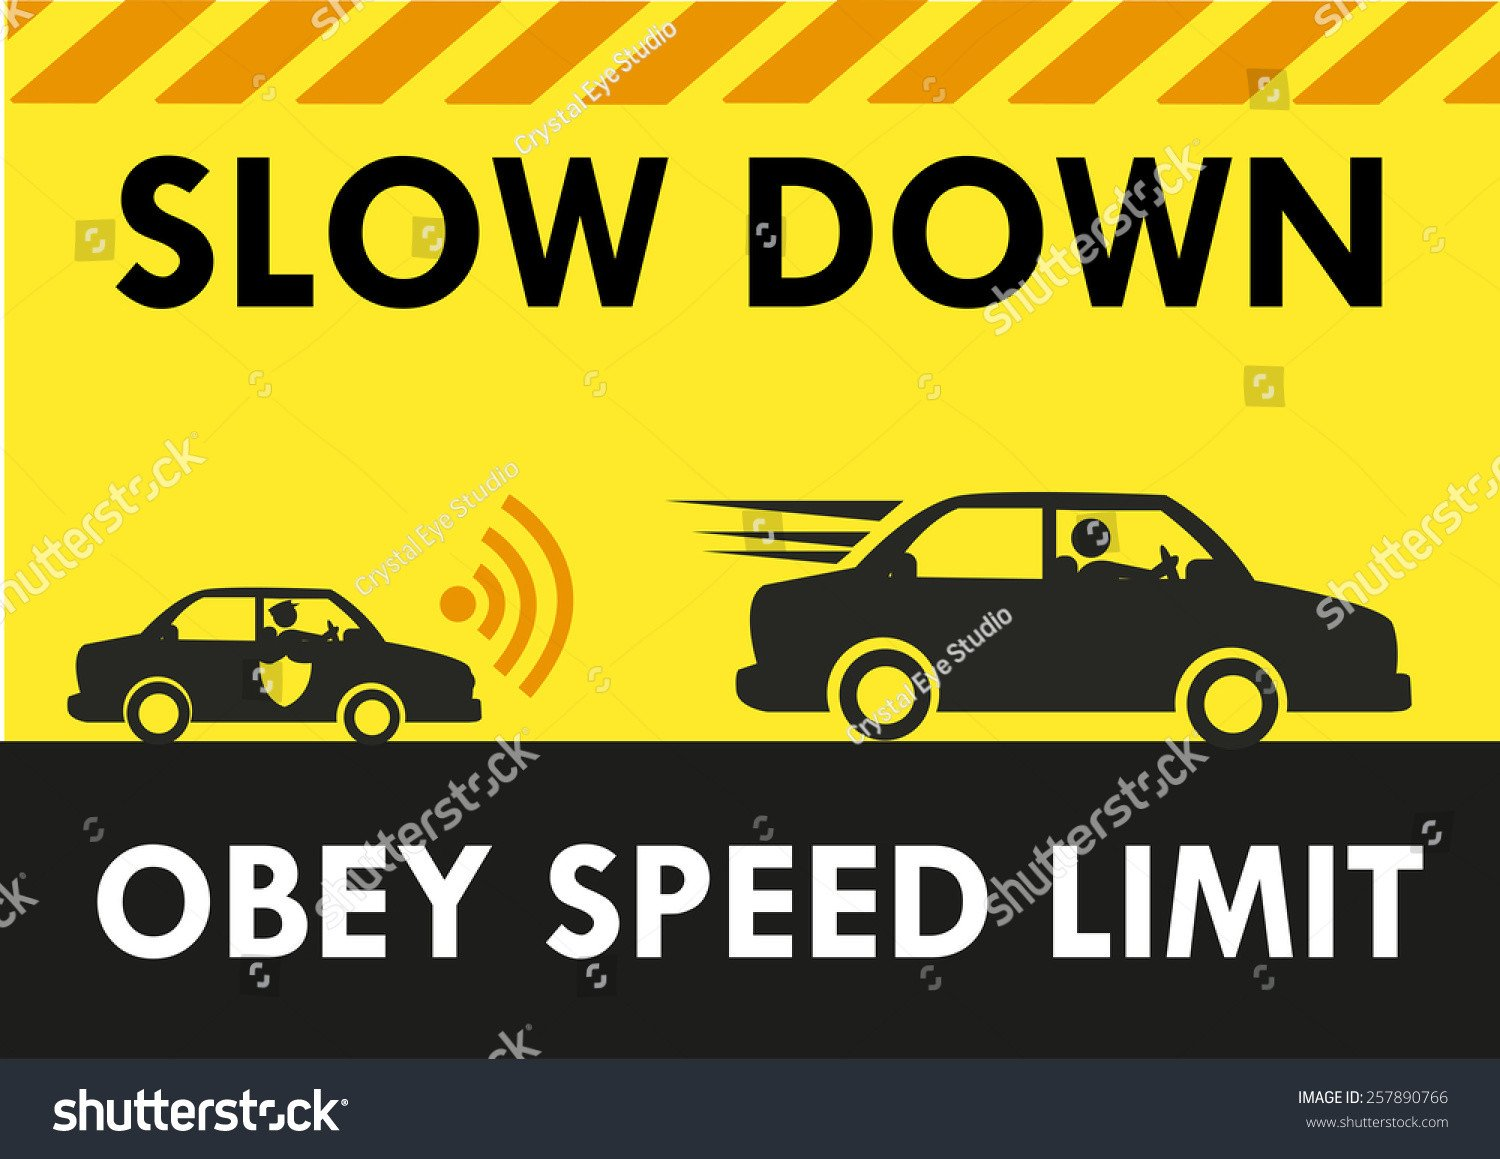 Speed Limit Sign Template Slow Down Obey Speed Limit Signboard Design Template with